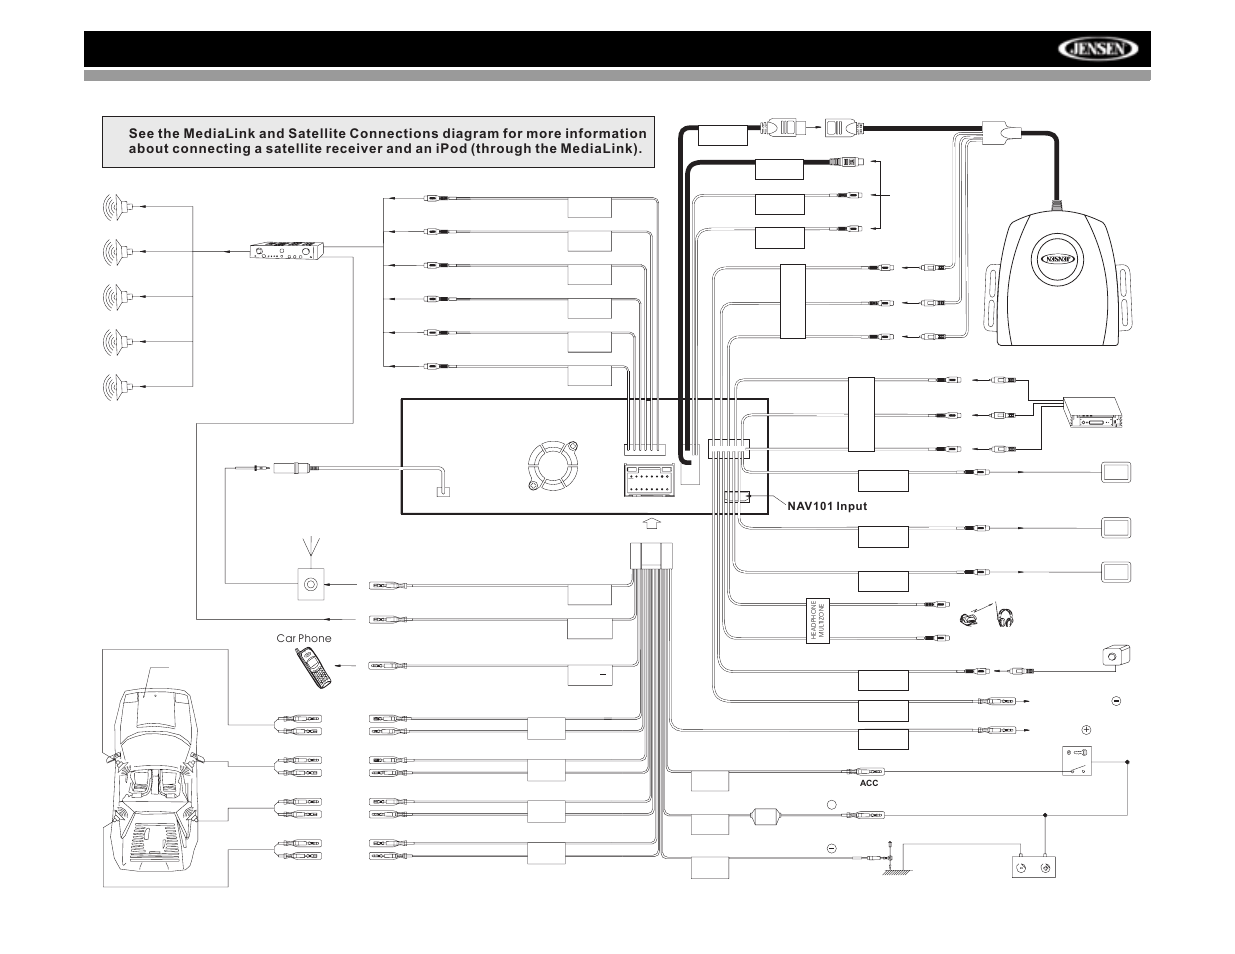 1400 Pioneer Car Audio Wiring in addition Jvc Kd R330 Wiring Diagram moreover Sony Xplod 52wx4 Wiring Diagram For A Cd Player in addition Cdx Gt630ui Wiring Diagram likewise Wiring Diagram For A Pioneer Car Stereo. on sony head unit